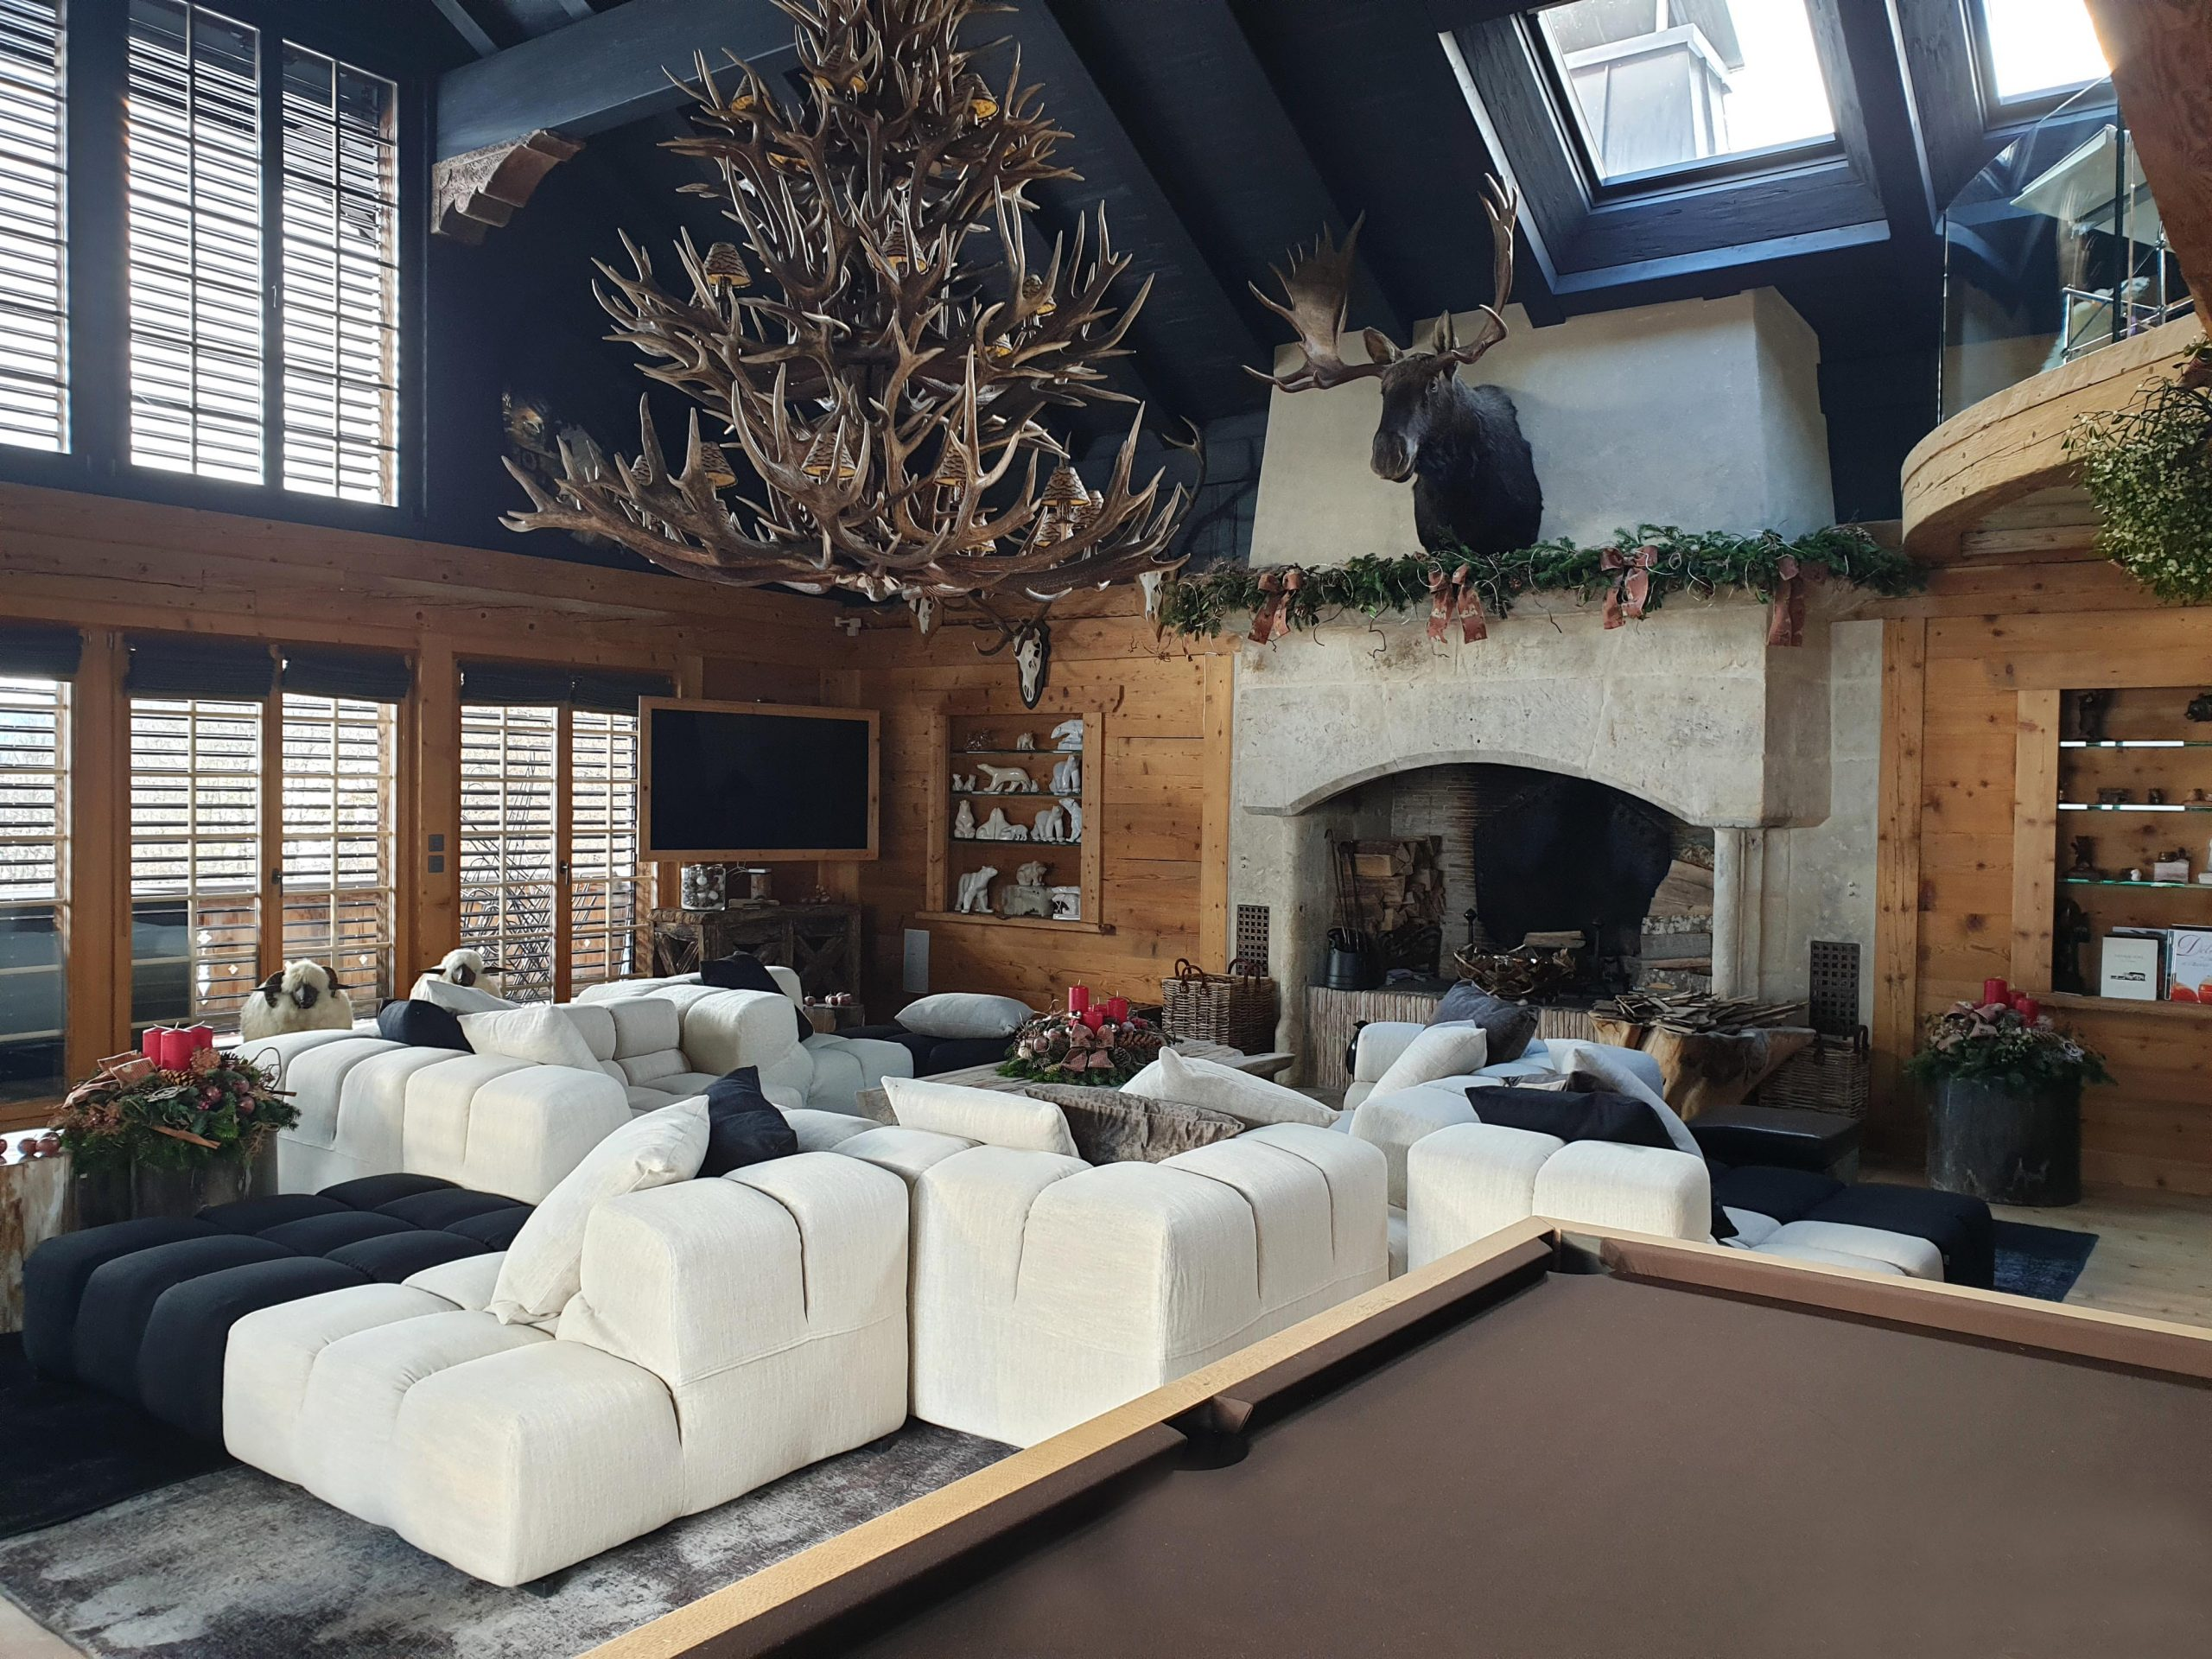 Sitting room in a Swiss chalet